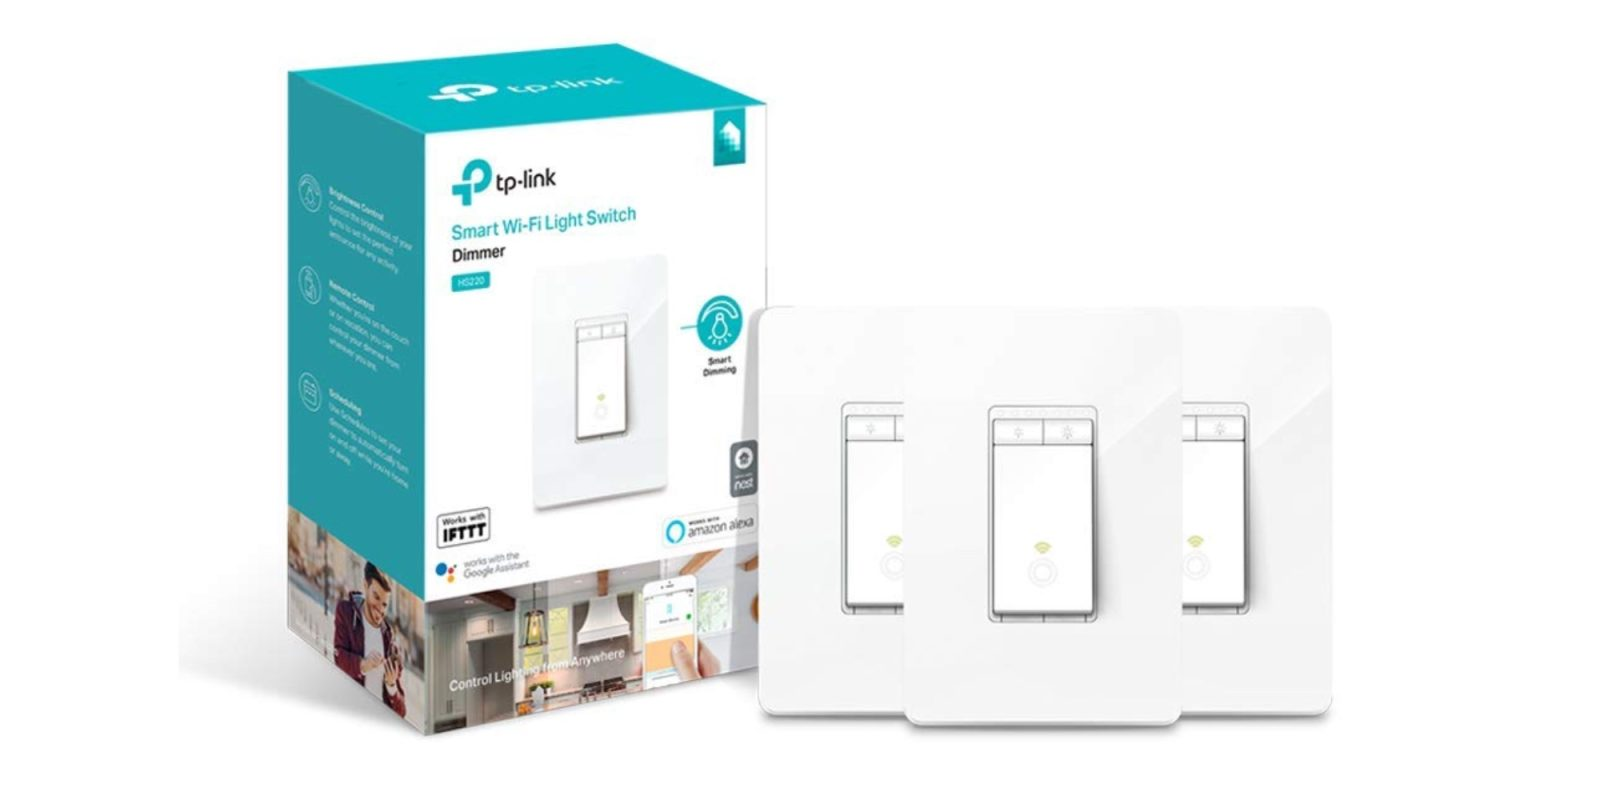 Deck out your home with three TP-Link Smart Dimmer Switches: $85 (Save $25)